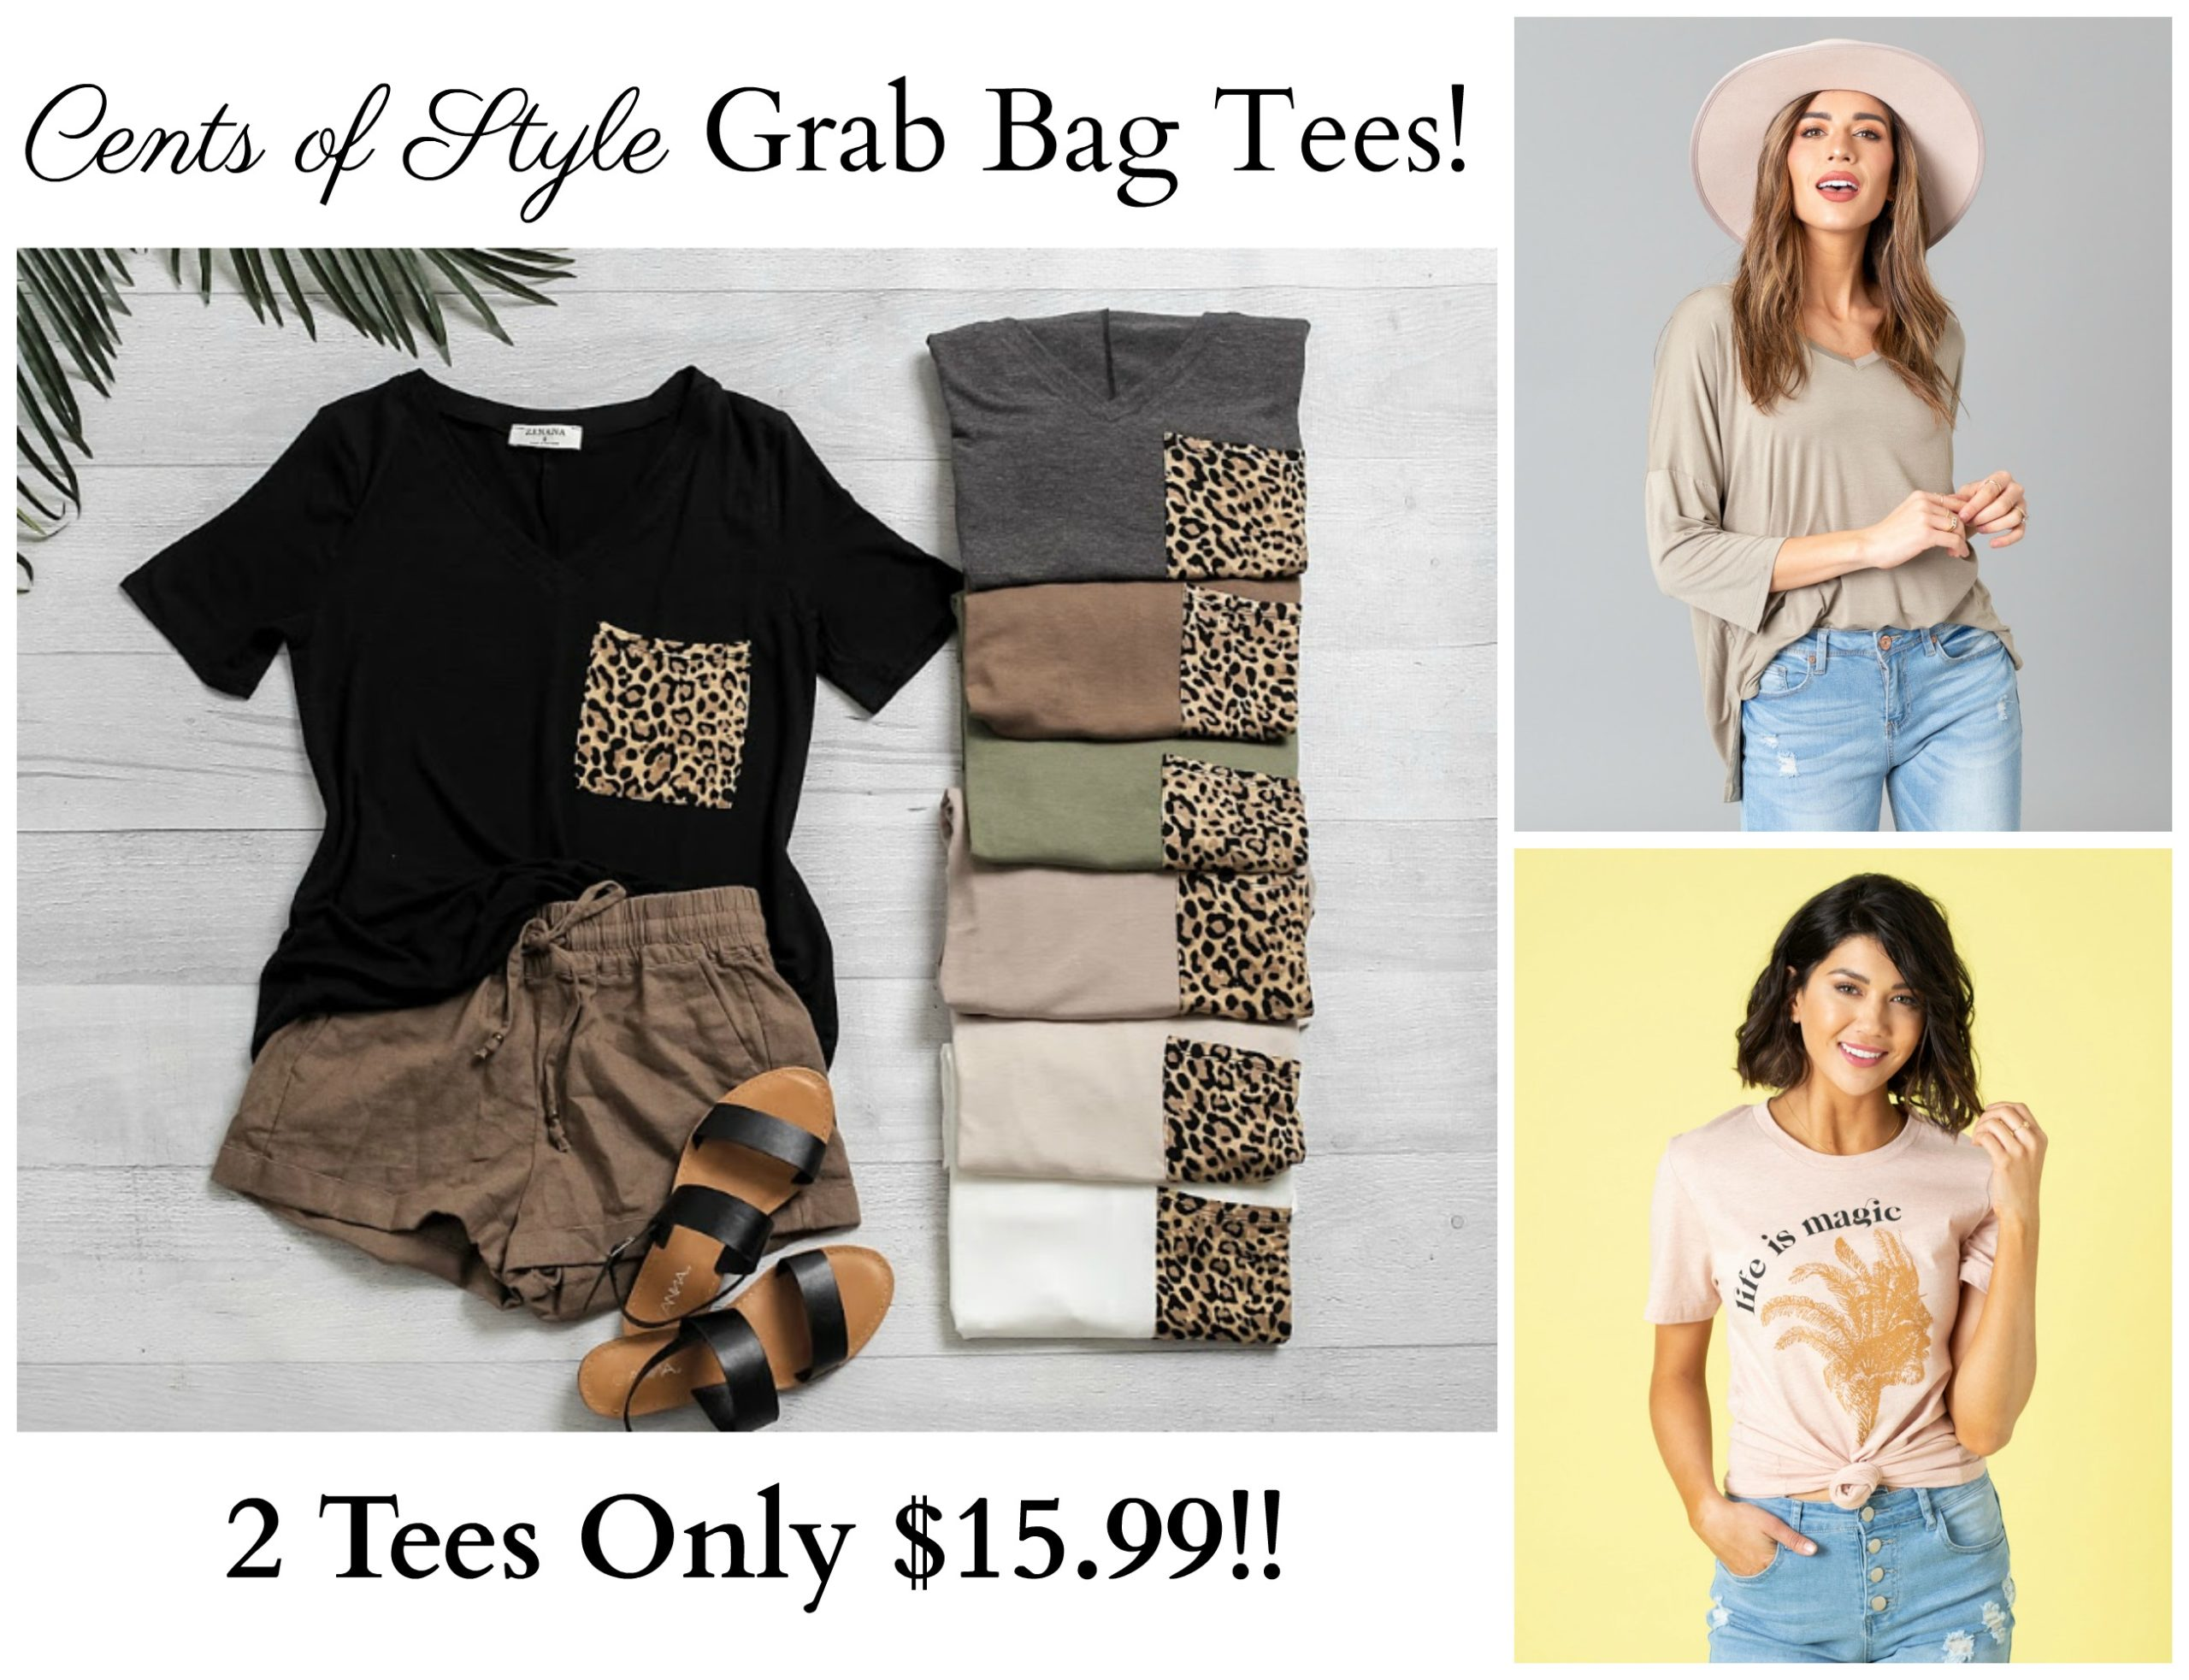 Cents of Style Grab Bags – 2 Tees Only $15.99!